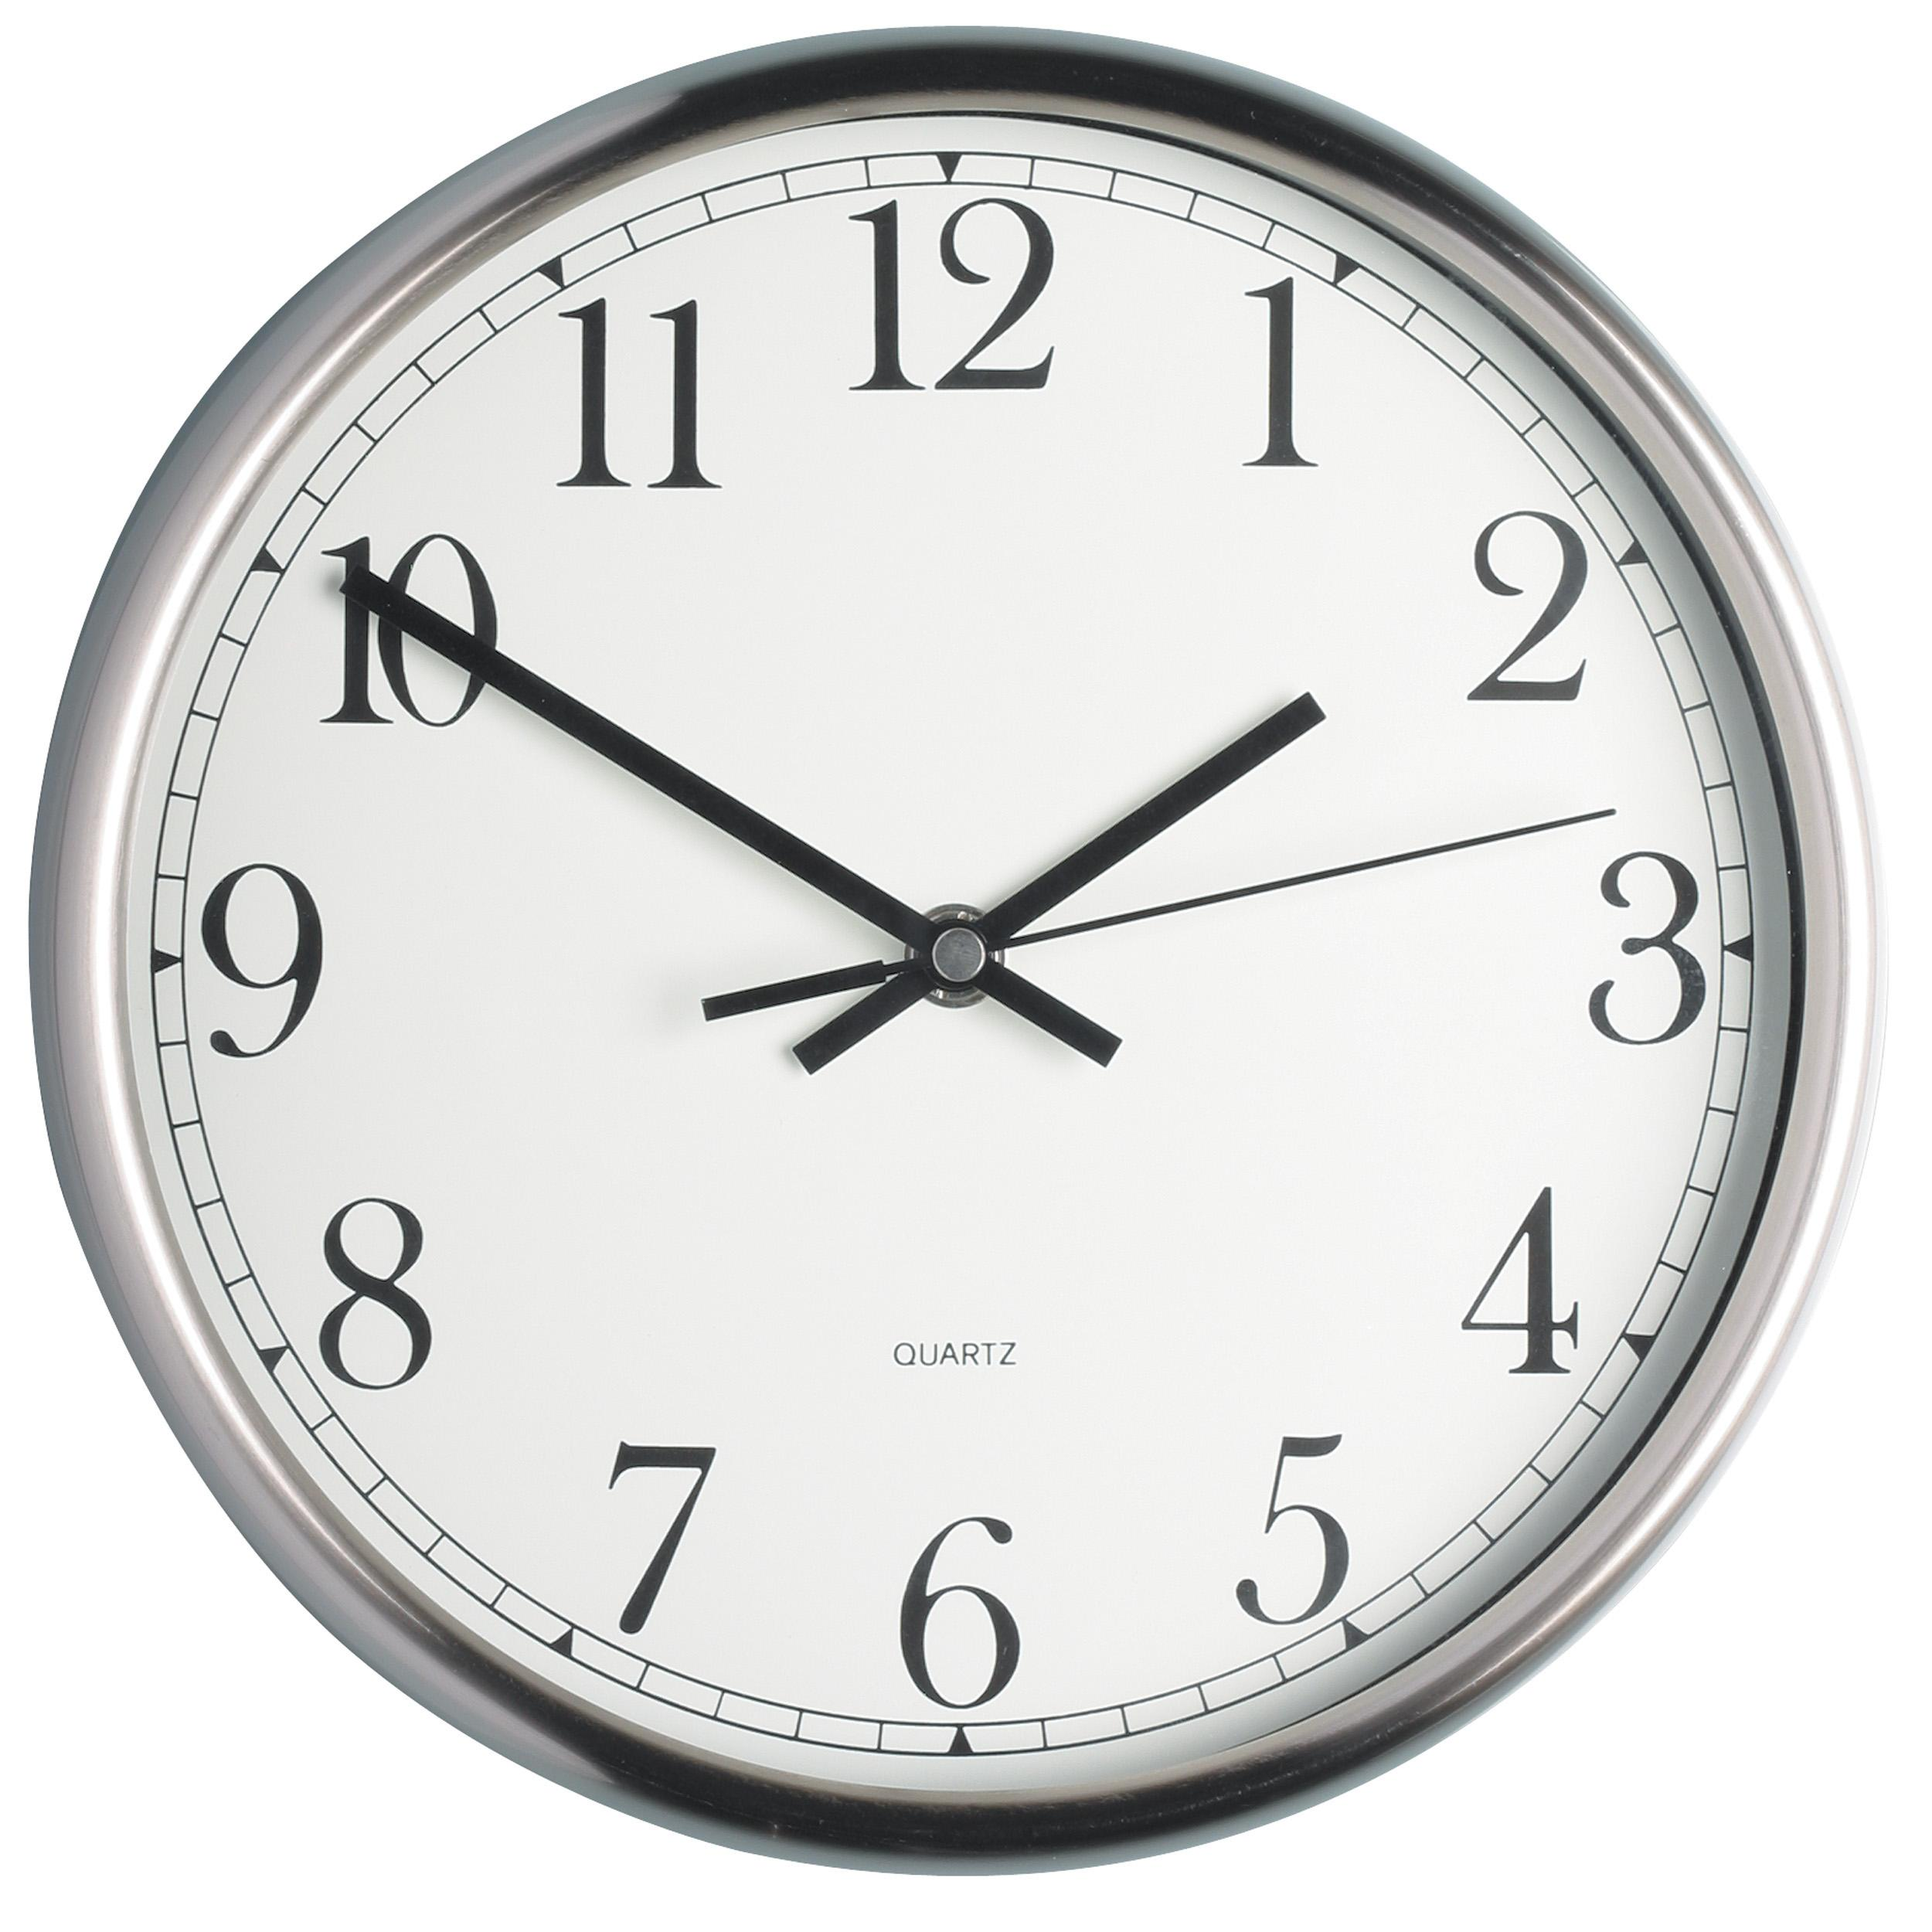 KitchenCraft Stainless Steel Kitchen Wall Clock, 25 cm (9